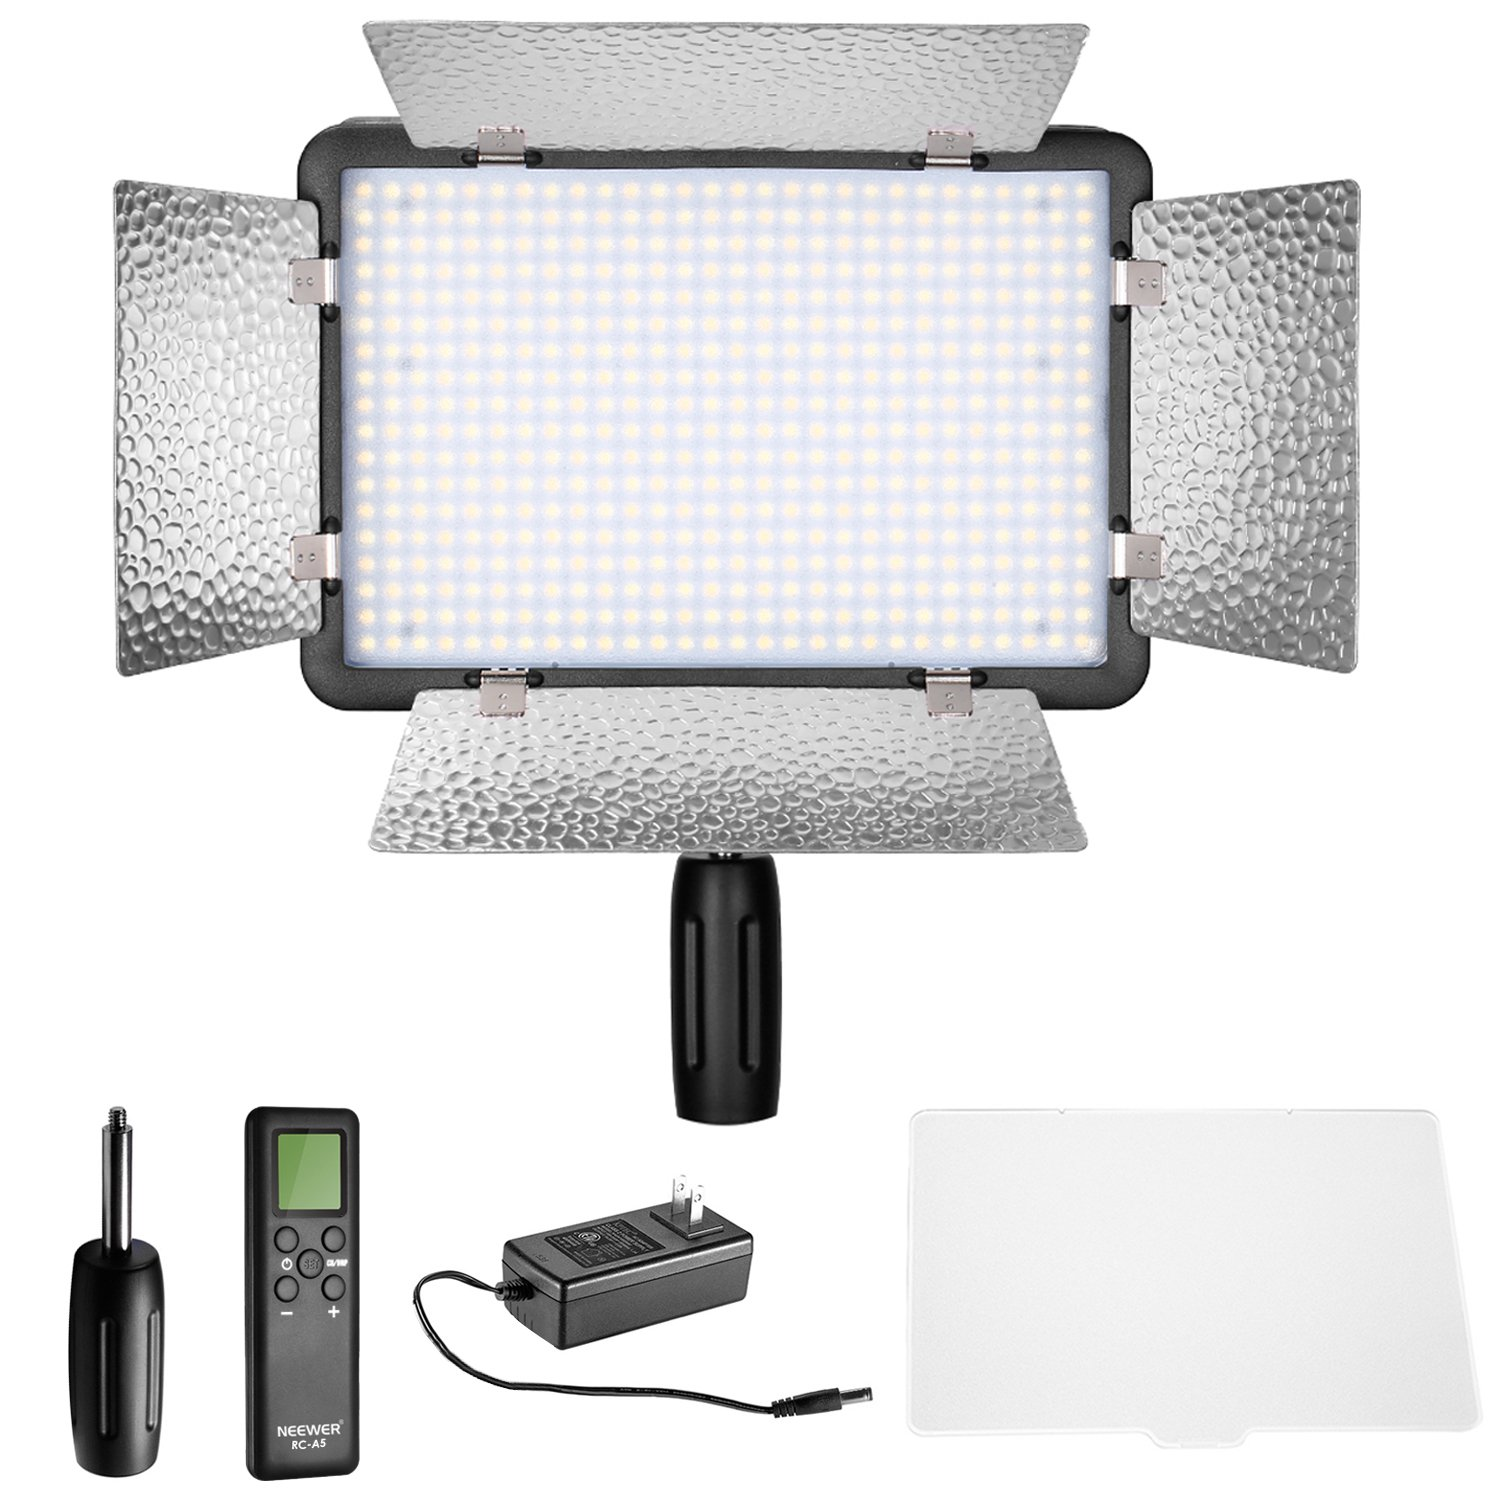 Neewer LED 500 Ultra High Power Dimmable Video Light with Built-in LCD Panel with Remote Control for Canon, Nikon, Pentax, Panasonic, Sony, Samsung, Olympus and Other Digital DSLR Cameras by Neewer